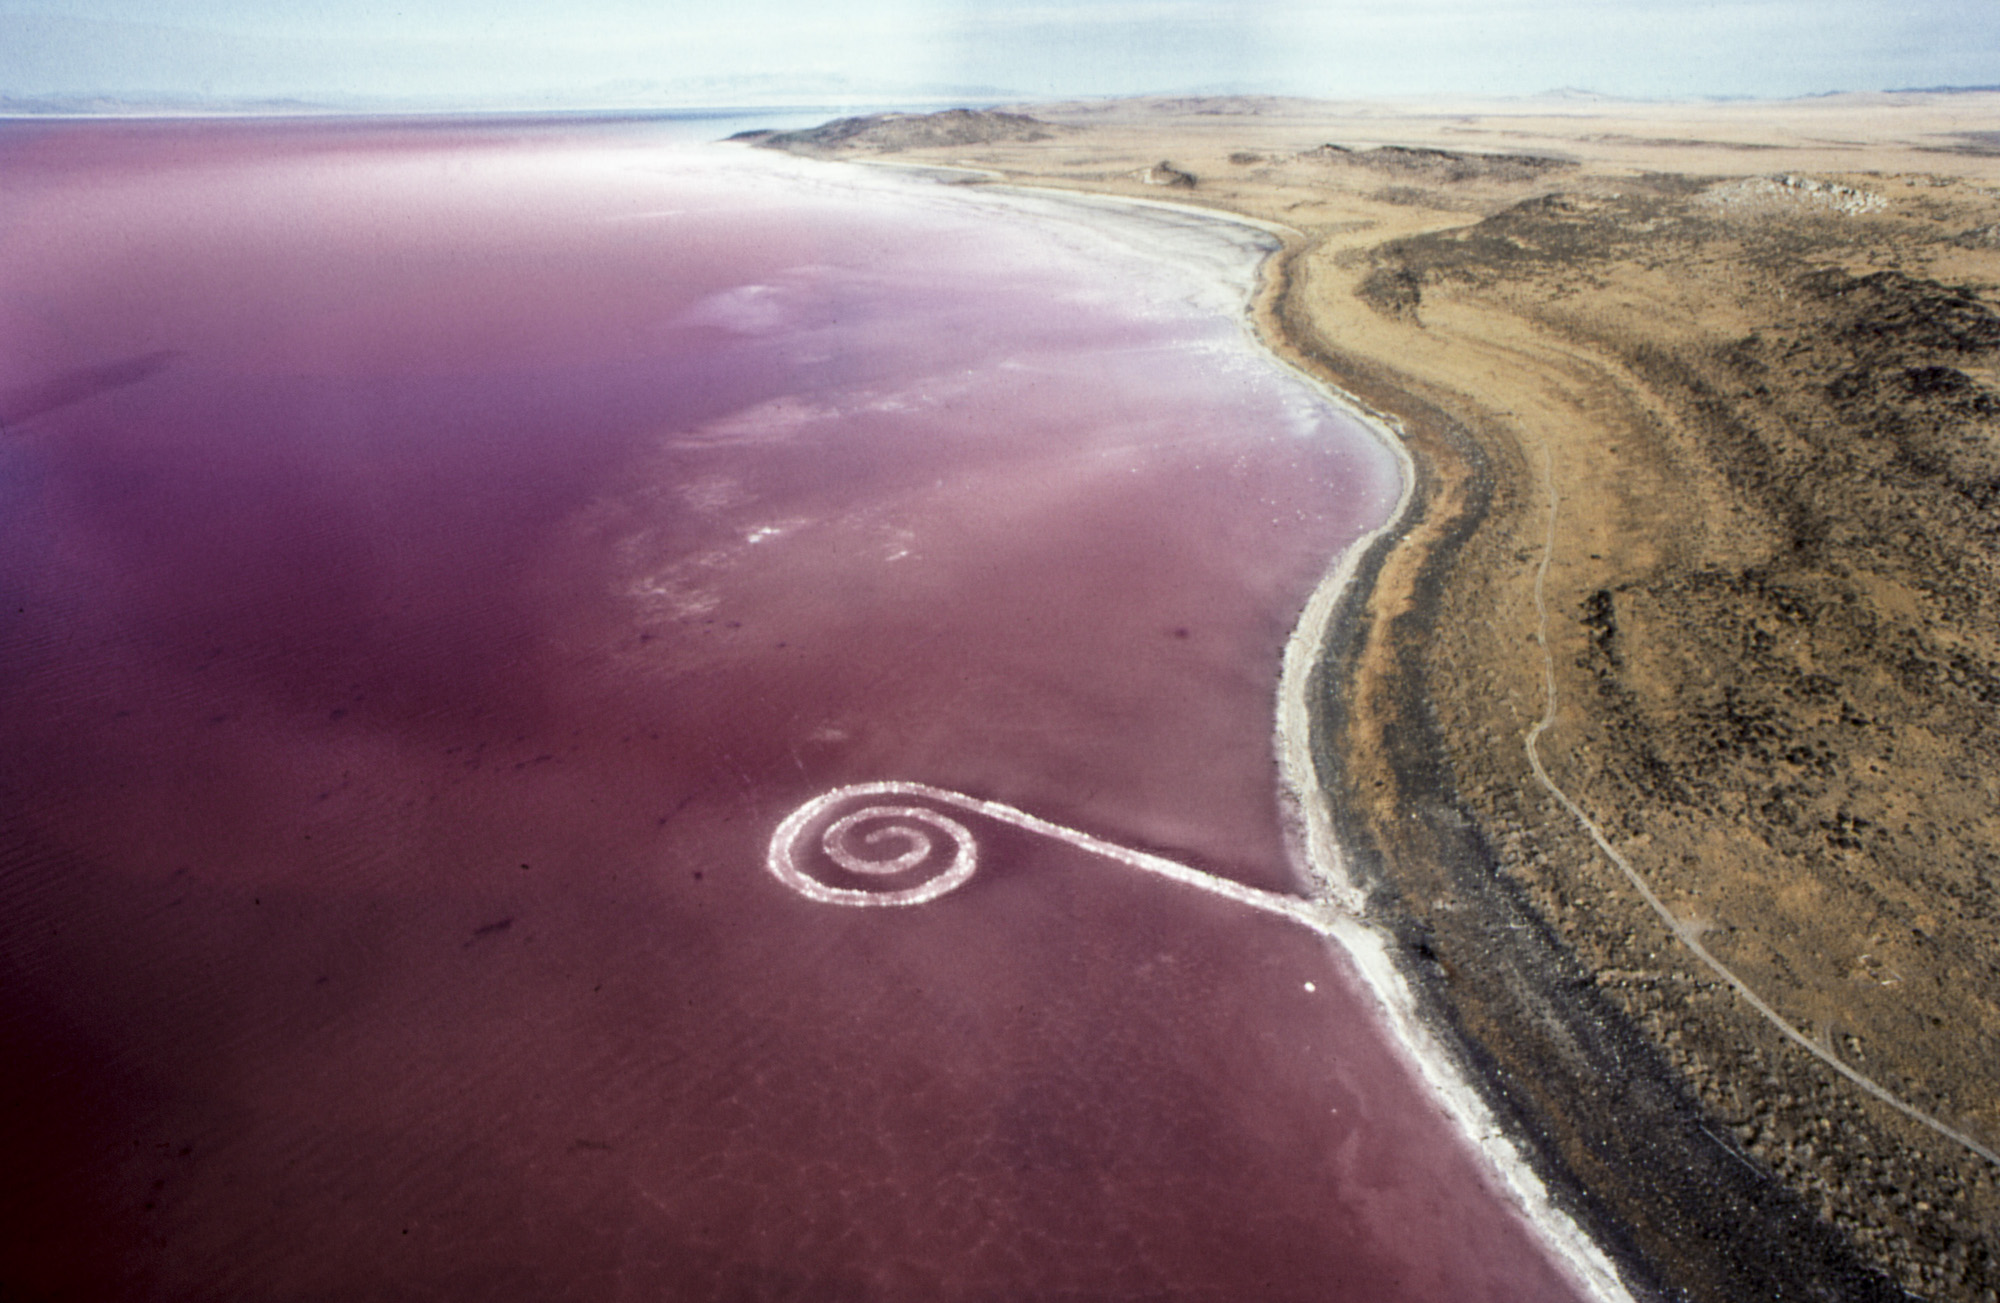 15 Essential Works of Land Art, from Great Salt Lakes to Dusty Fields ofLightning